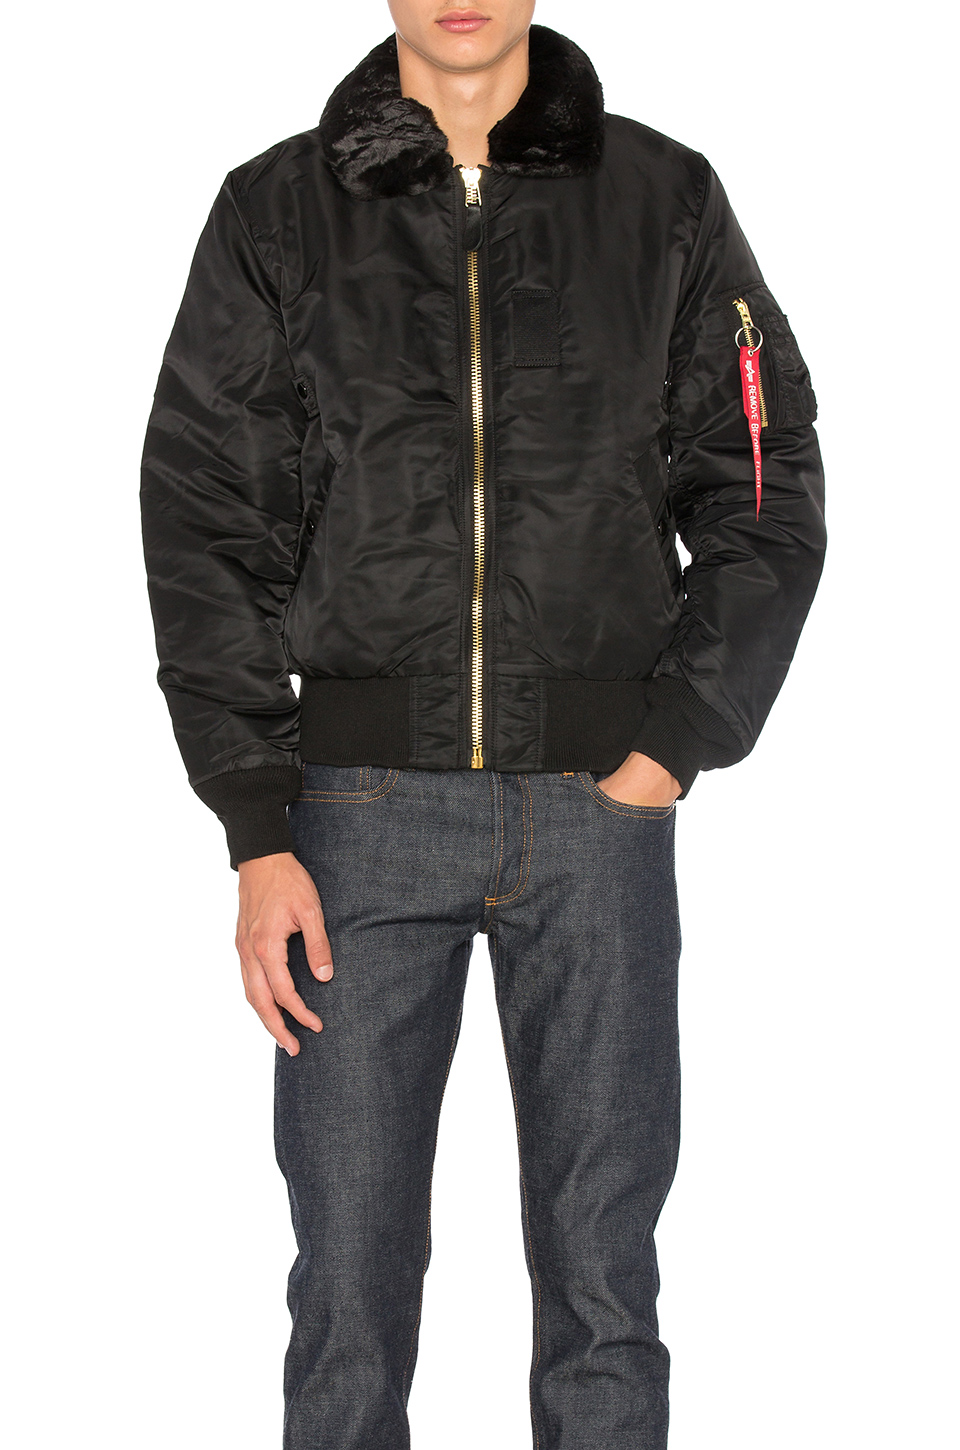 B-15 Removable Faux Fur Collar Flight Jacket, Black from EAST DANE